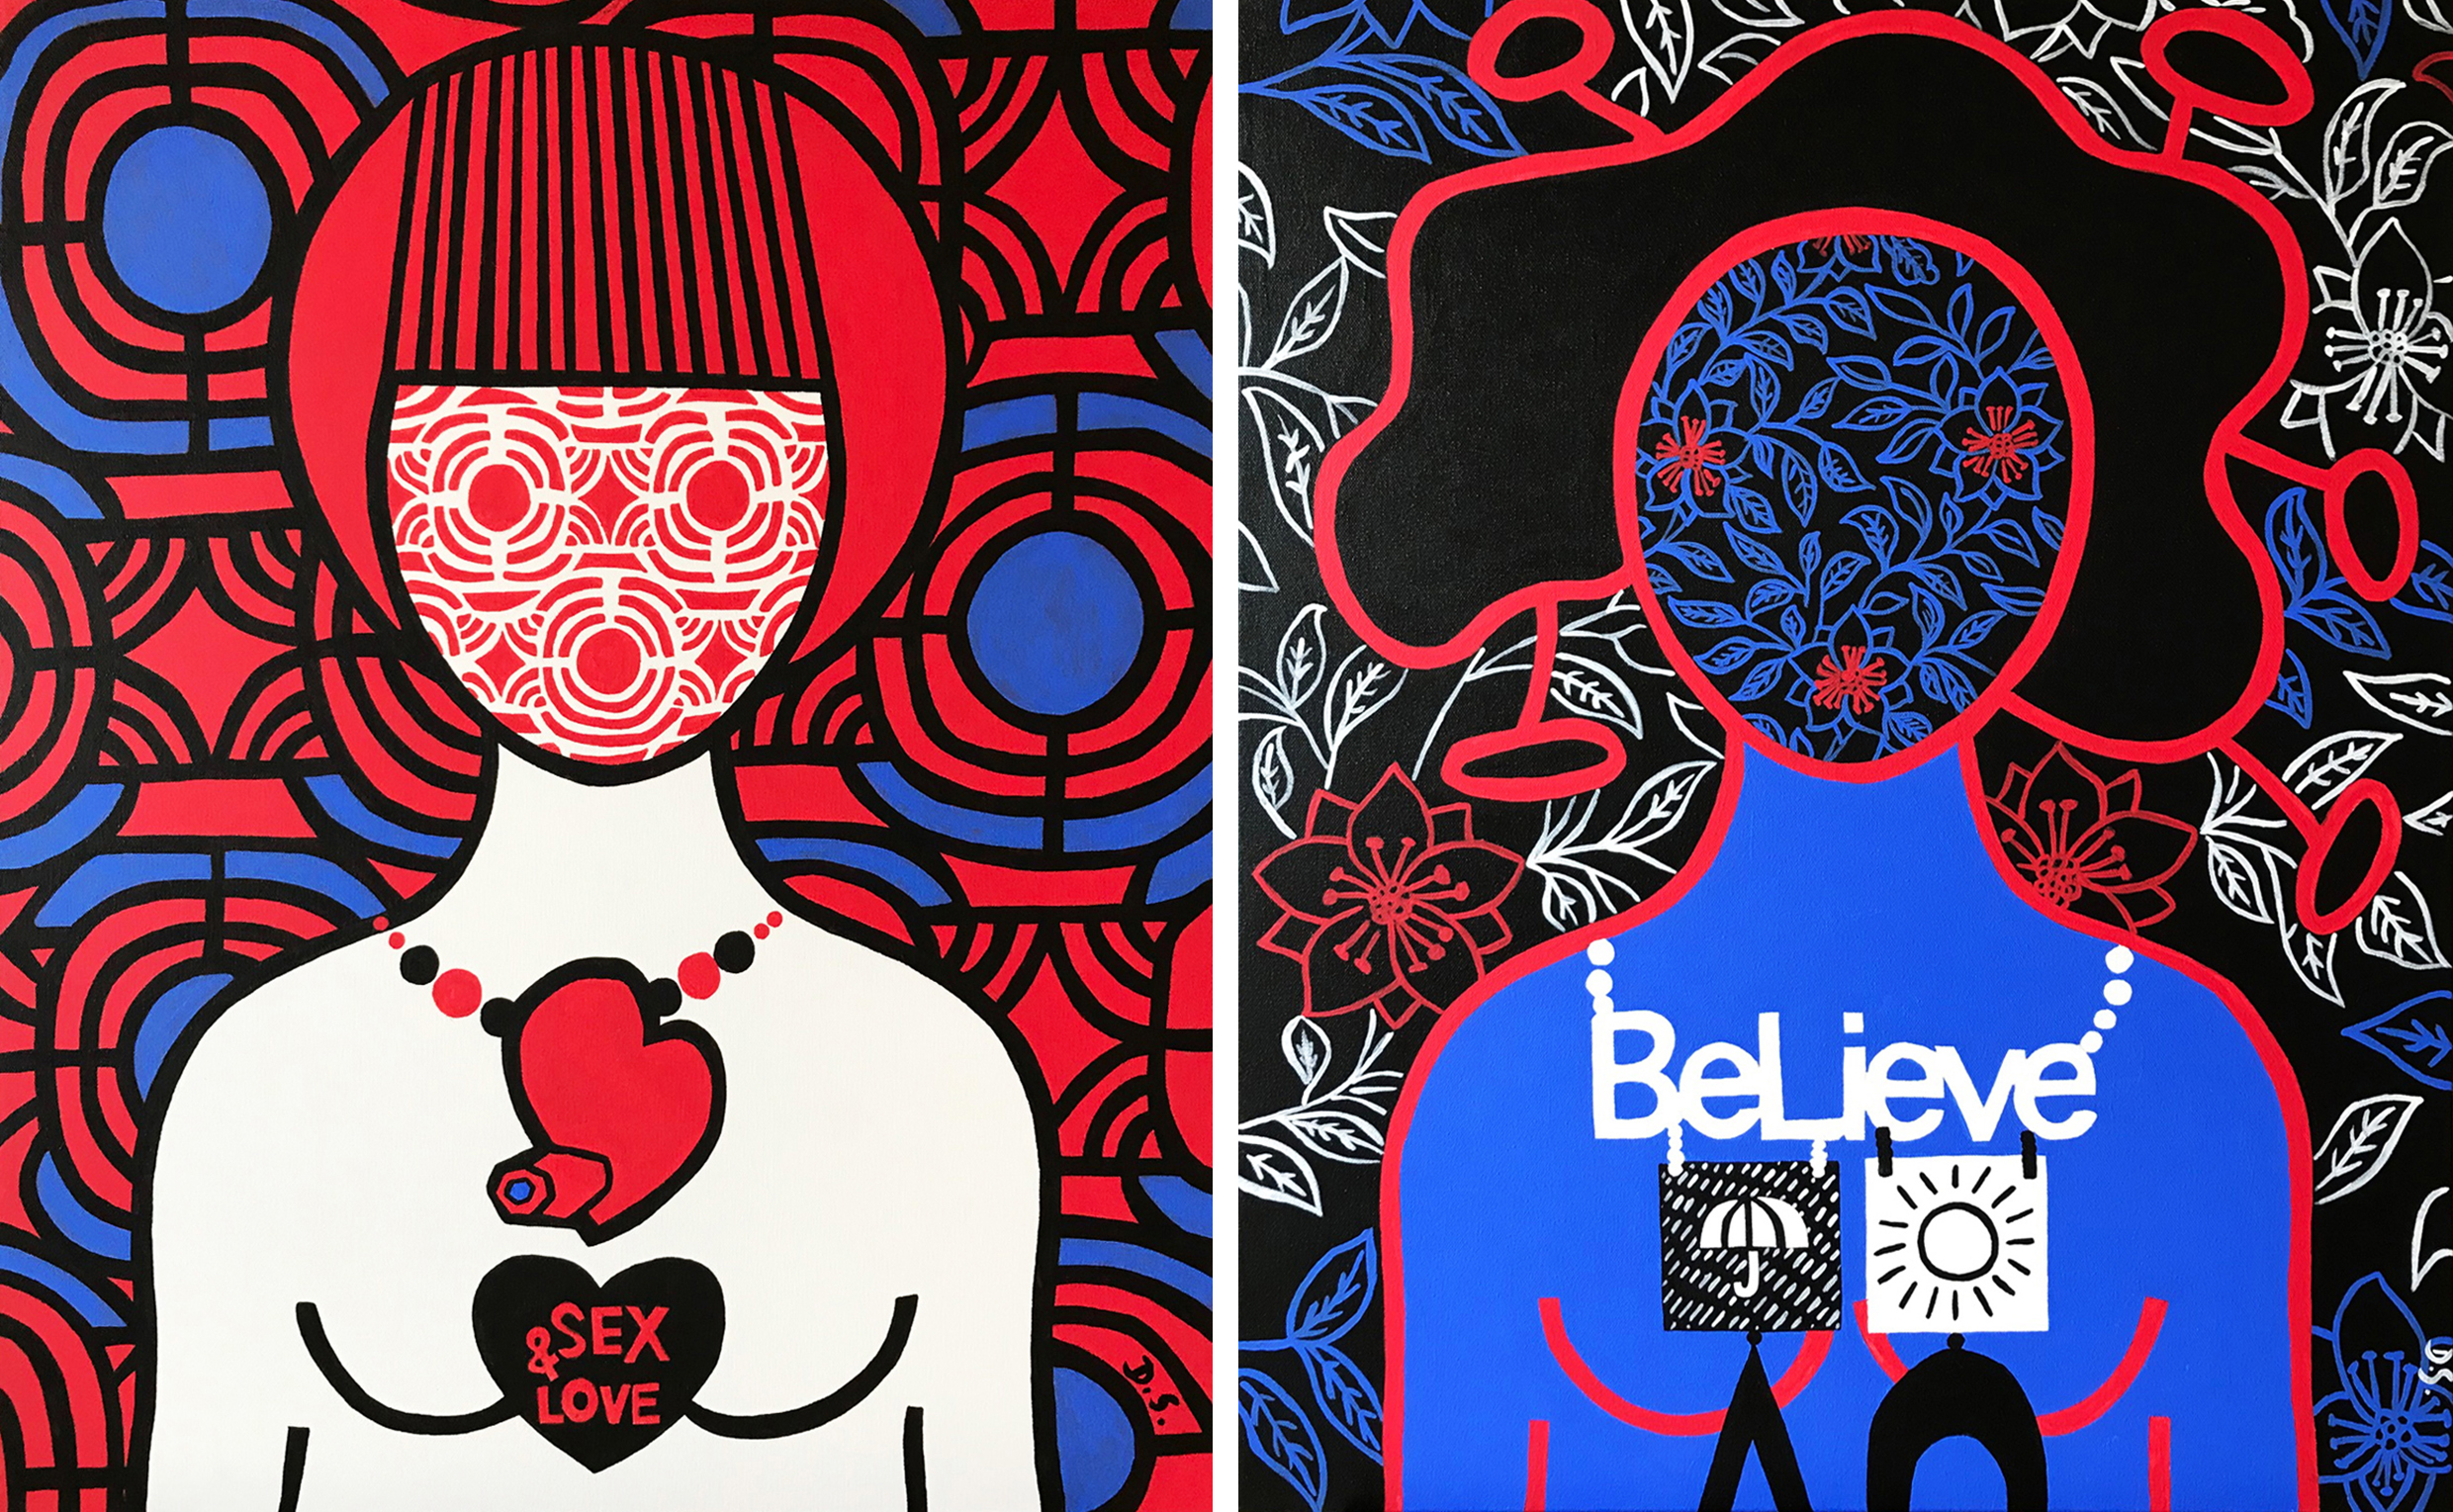 """Acrylic on stretched canvas 30"""" X 24"""" Sex and Love  Acrylic on stretched canvas 30"""" X 24"""" Believe"""